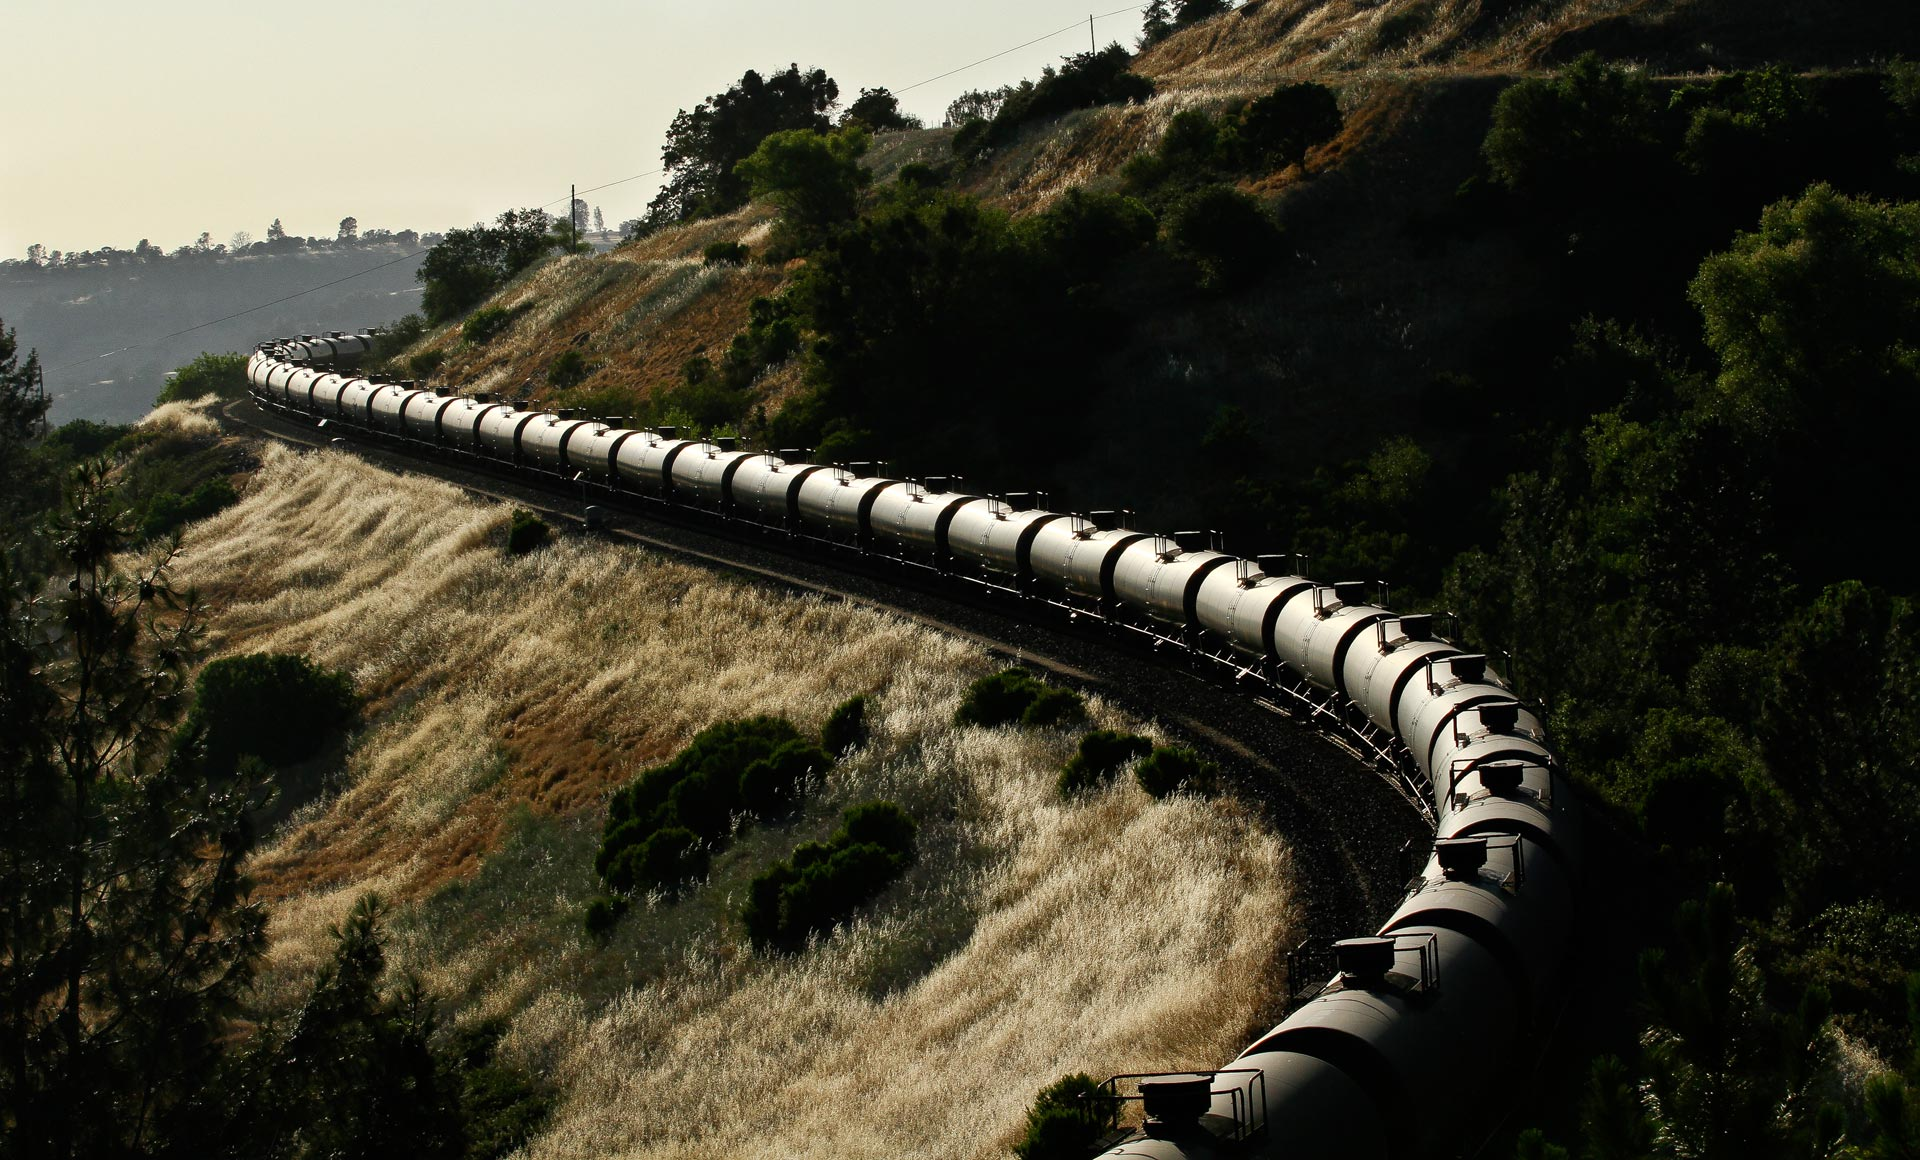 A train carrying crude oil operated by BNSF railway in California.